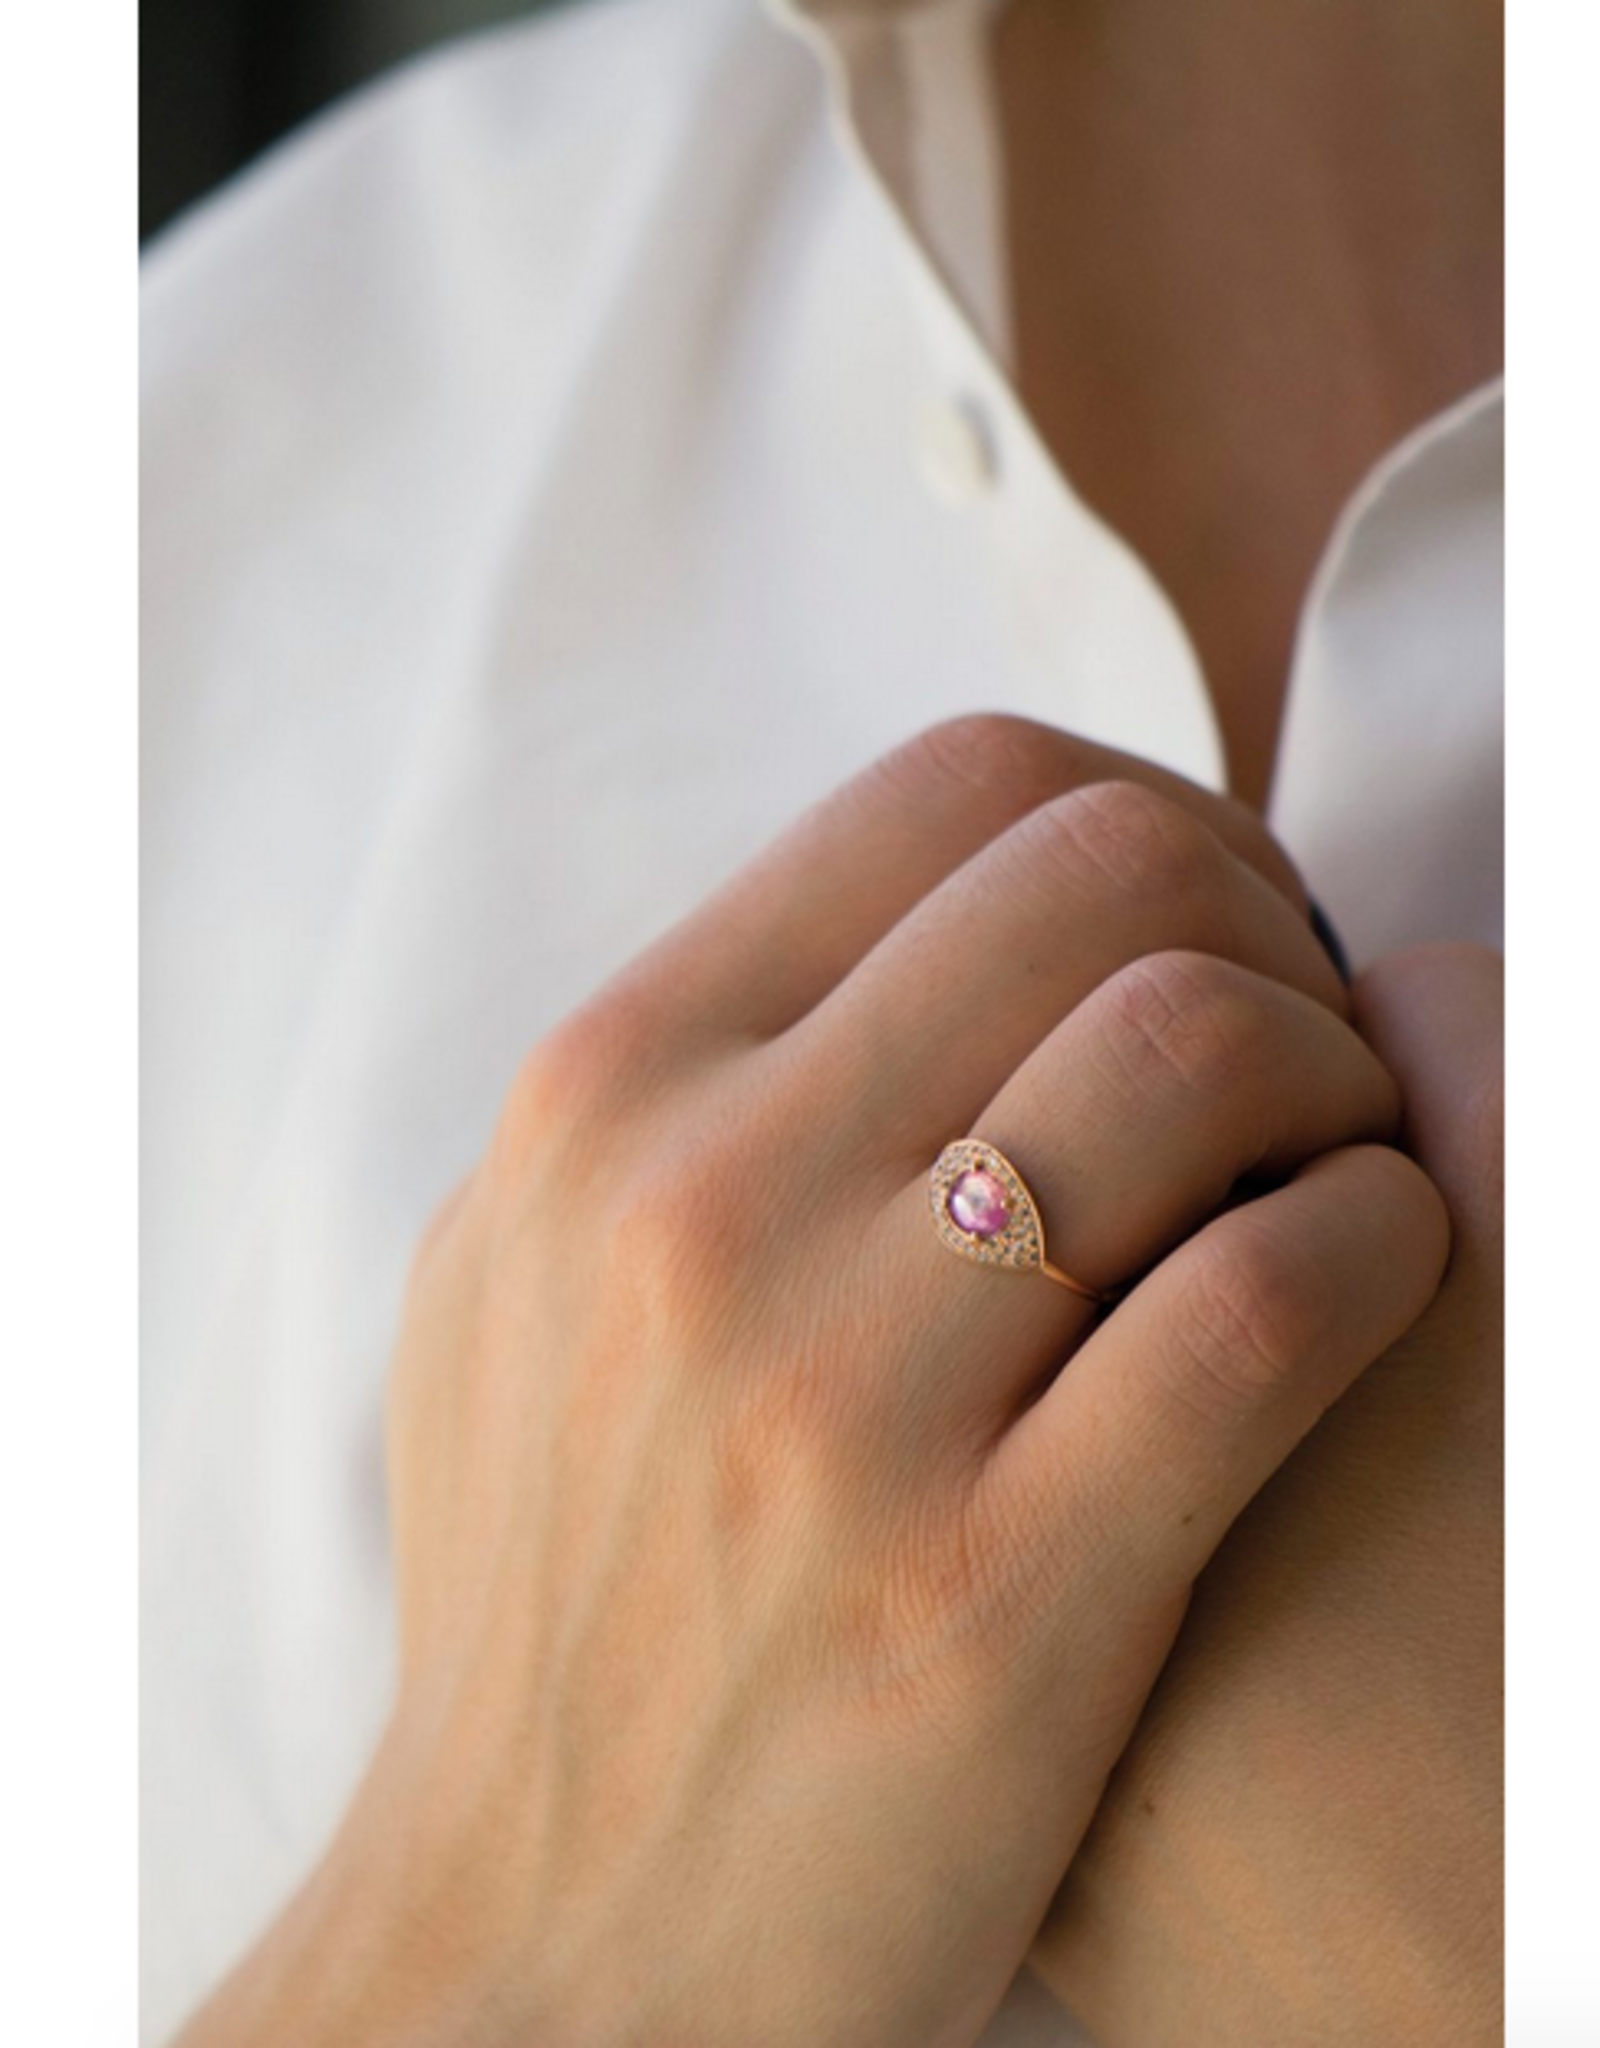 Celine Daoust Full Eye Ring - Pink Tourmaline  + Diamonds